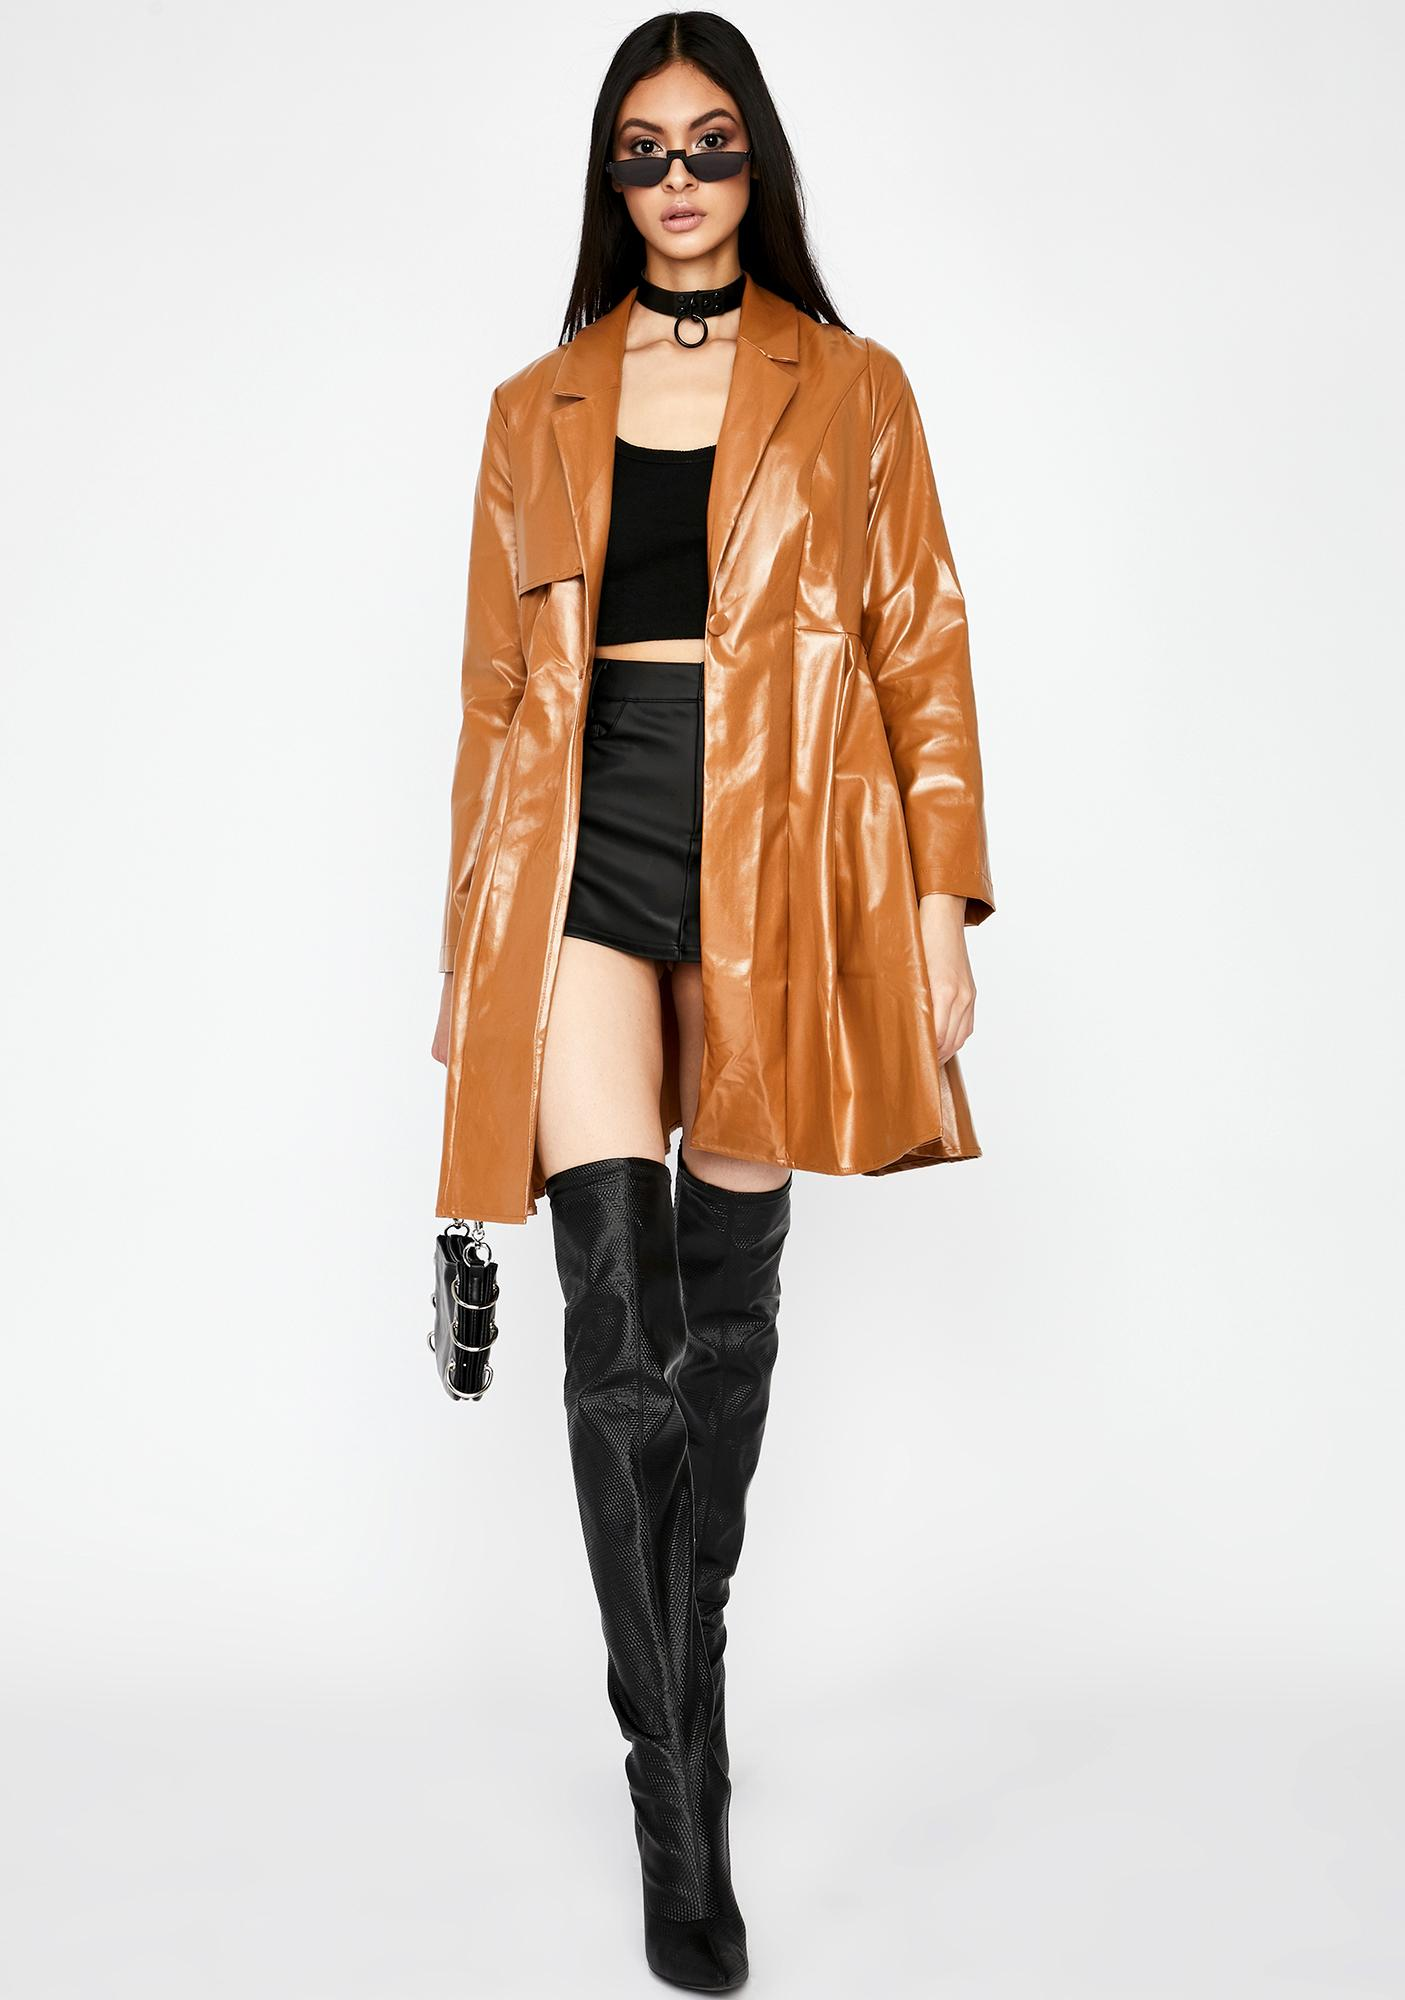 Fifth Avenue Fever Trench Coat